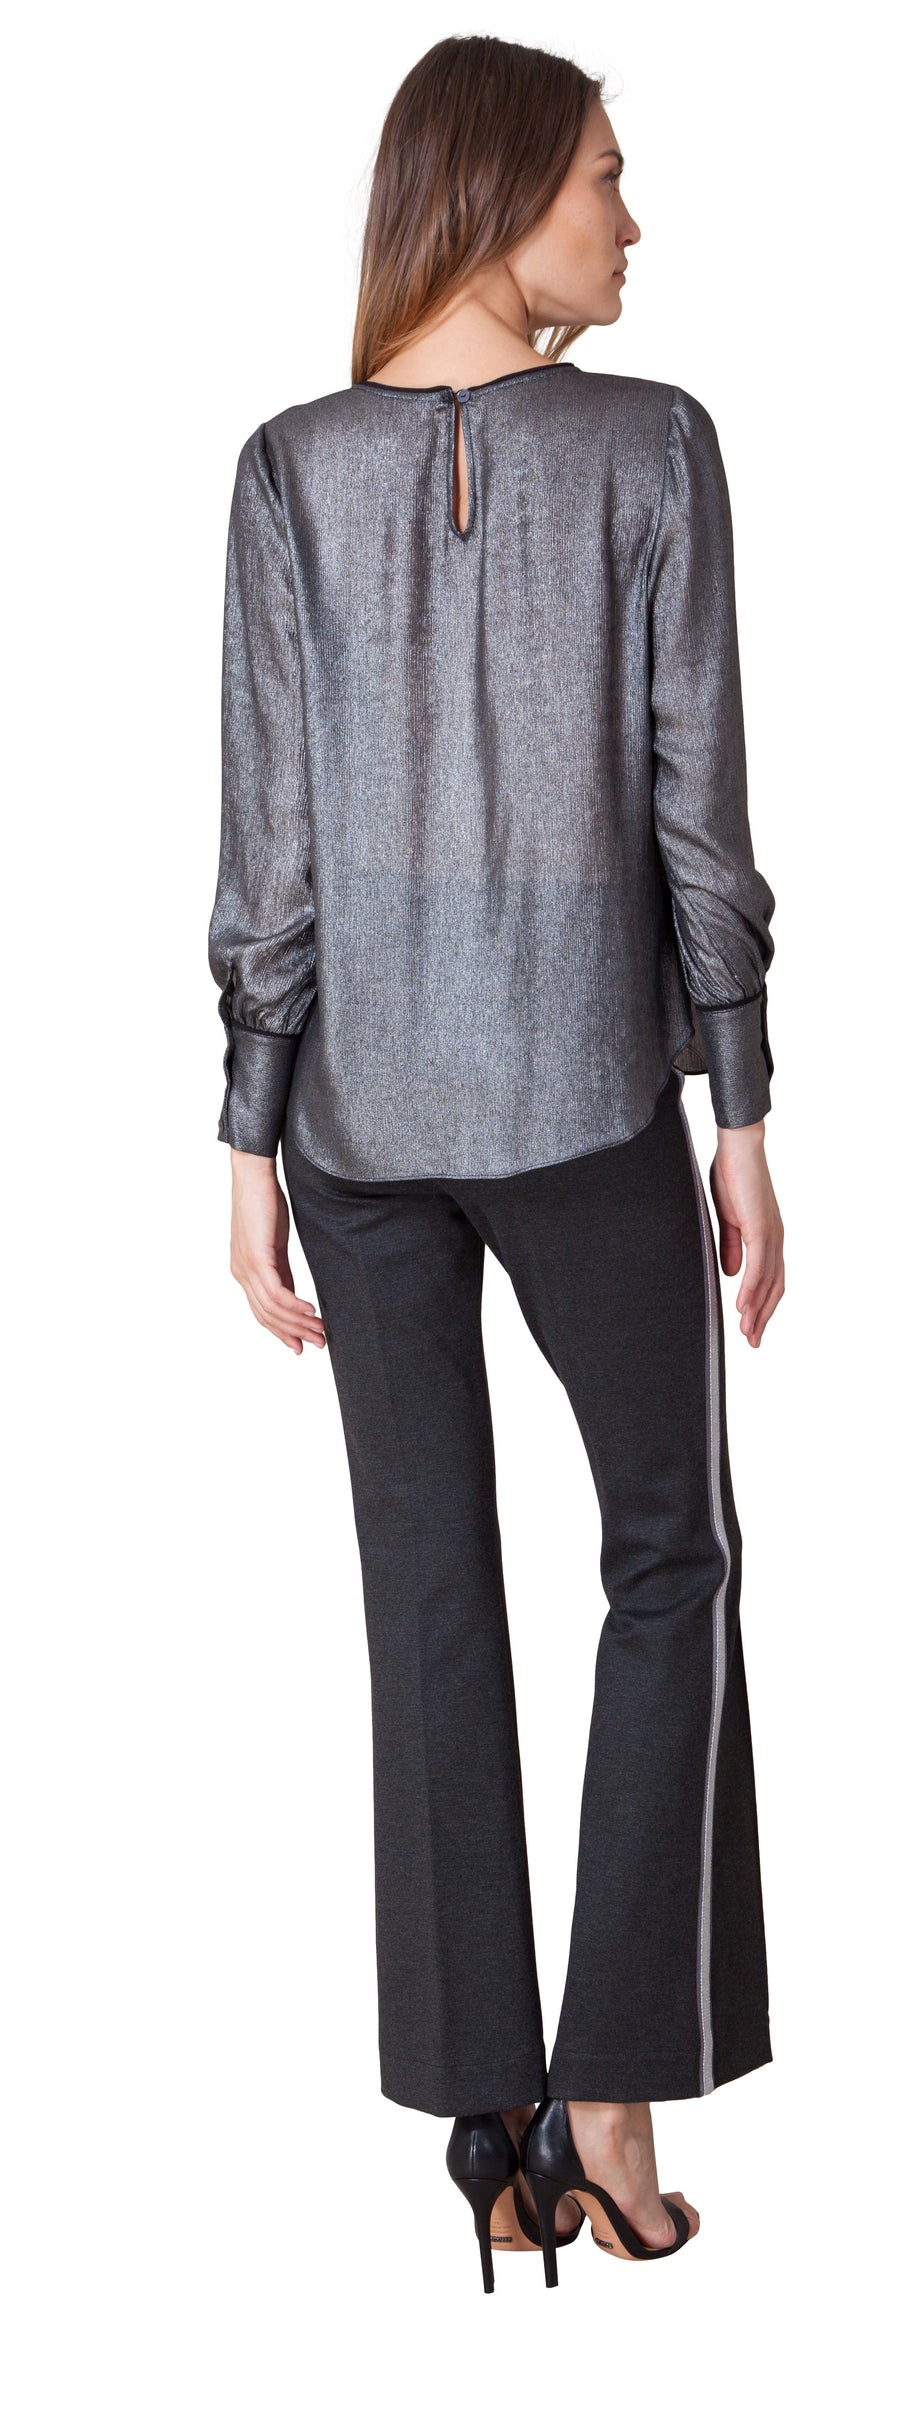 Thandie Metallic Foiled Blouse by Hale Bob - ShopMINQ